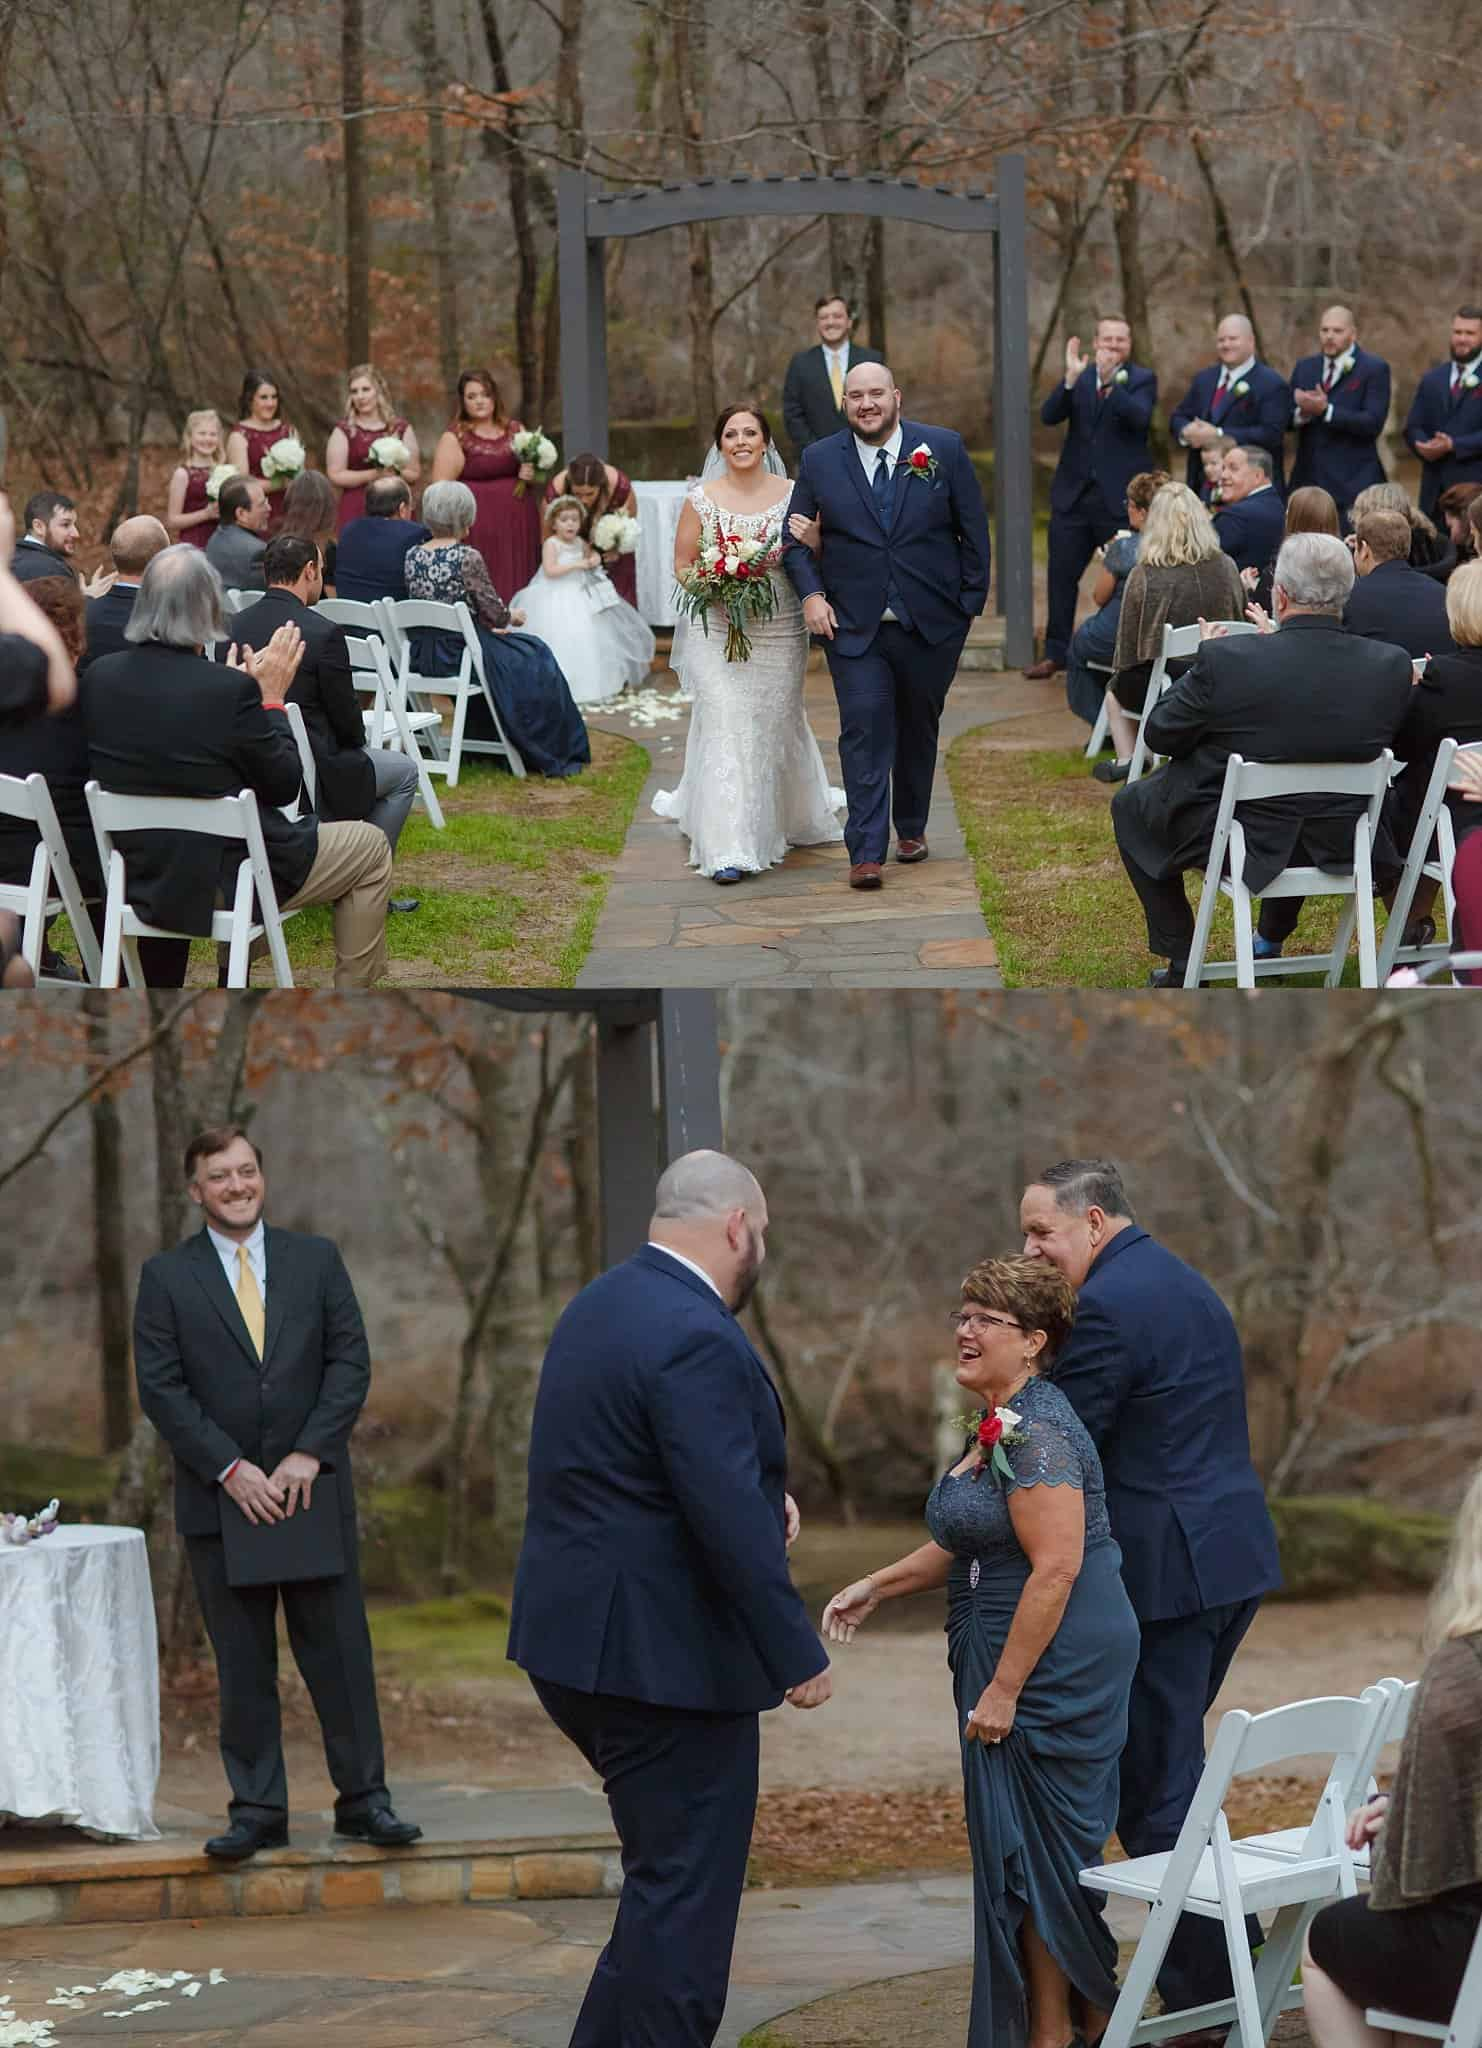 Groom Escorts Bride down the Aisle at recessional and returns to escort mother of the groom Wedding Ceremony Recessional